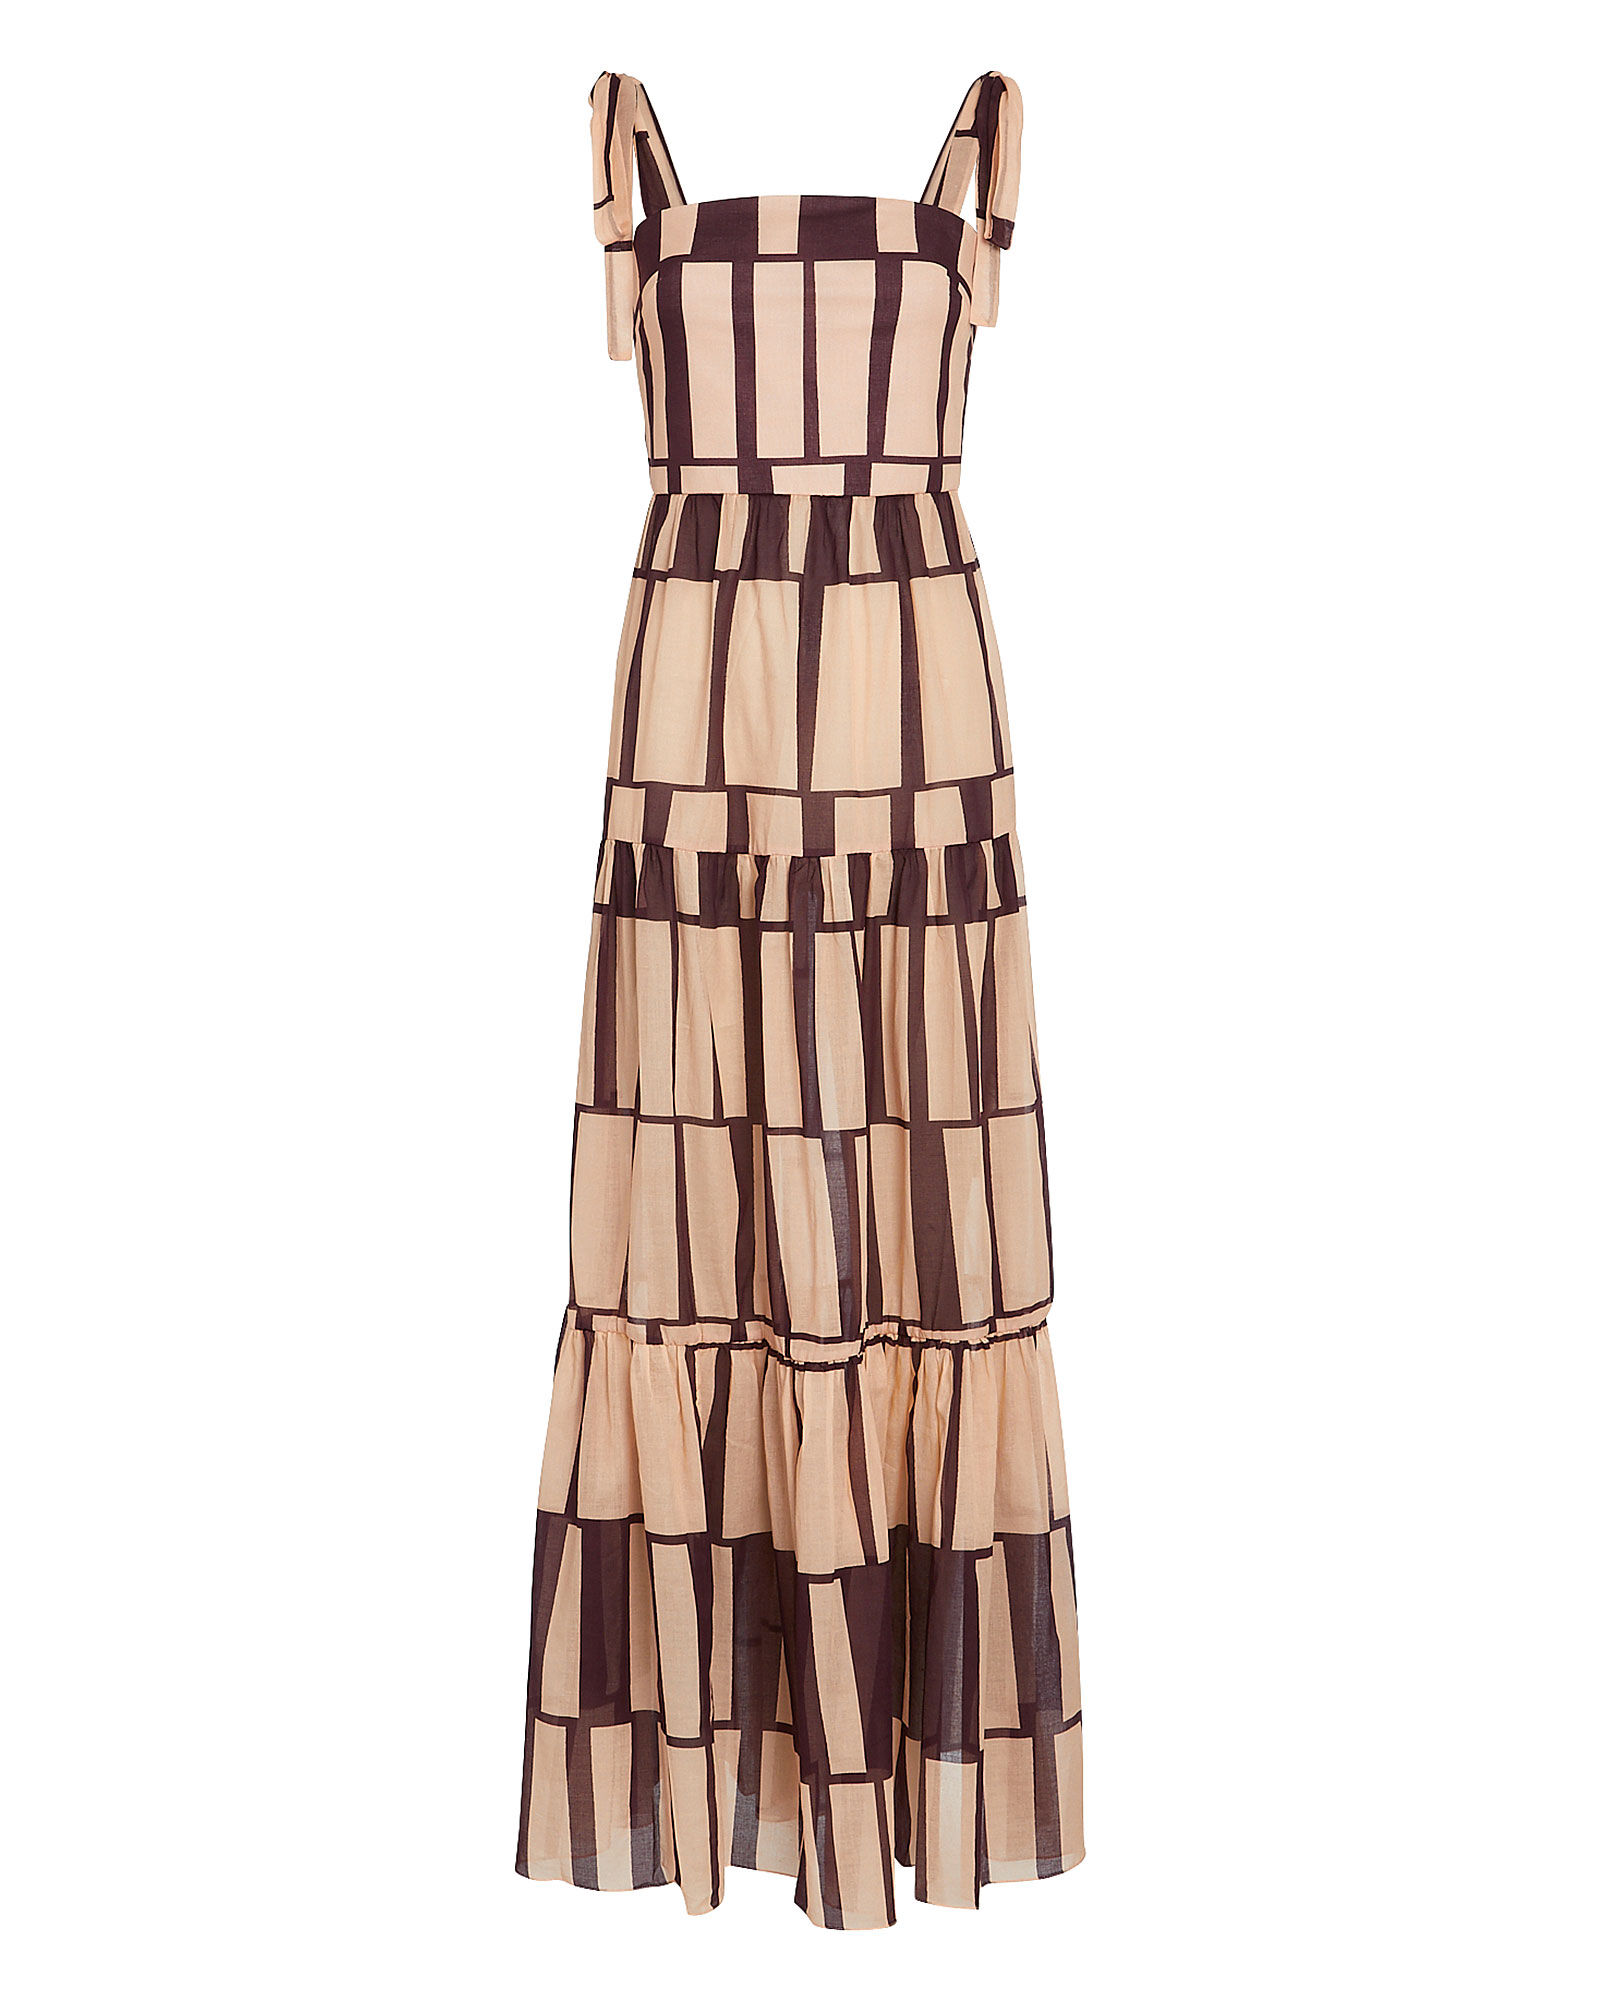 Waterfront Striped Cotton Voile Dress, BEIGE/COCOA, hi-res